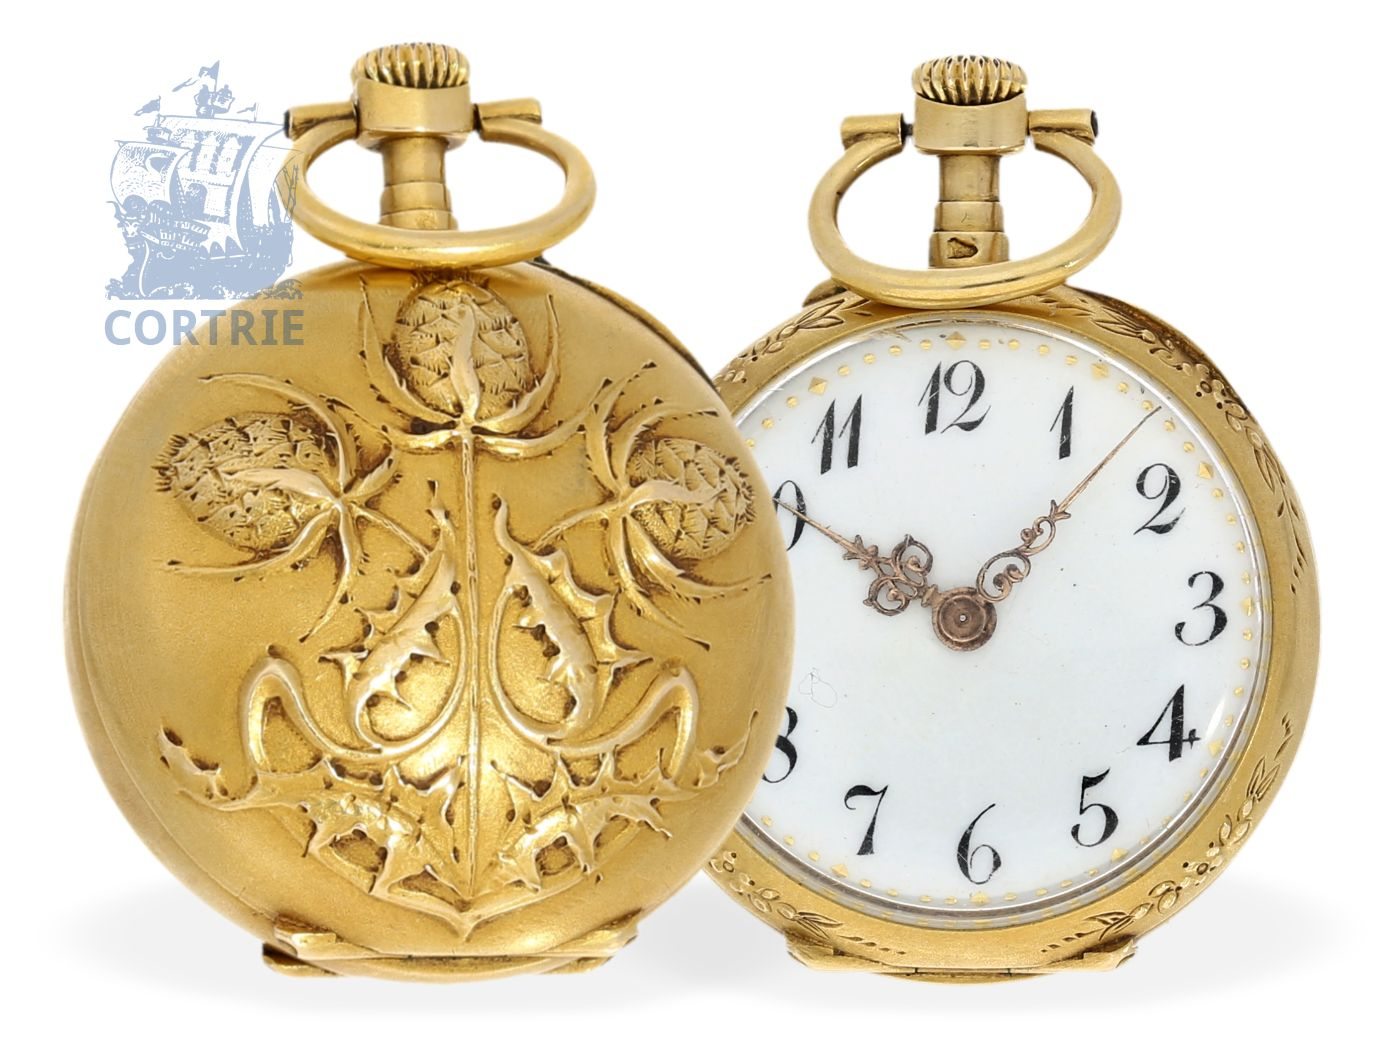 Pocket watch/pendant watch: fine Art Nouveau ladies watch, Le Coultre, 18K gold, ca. 1900-